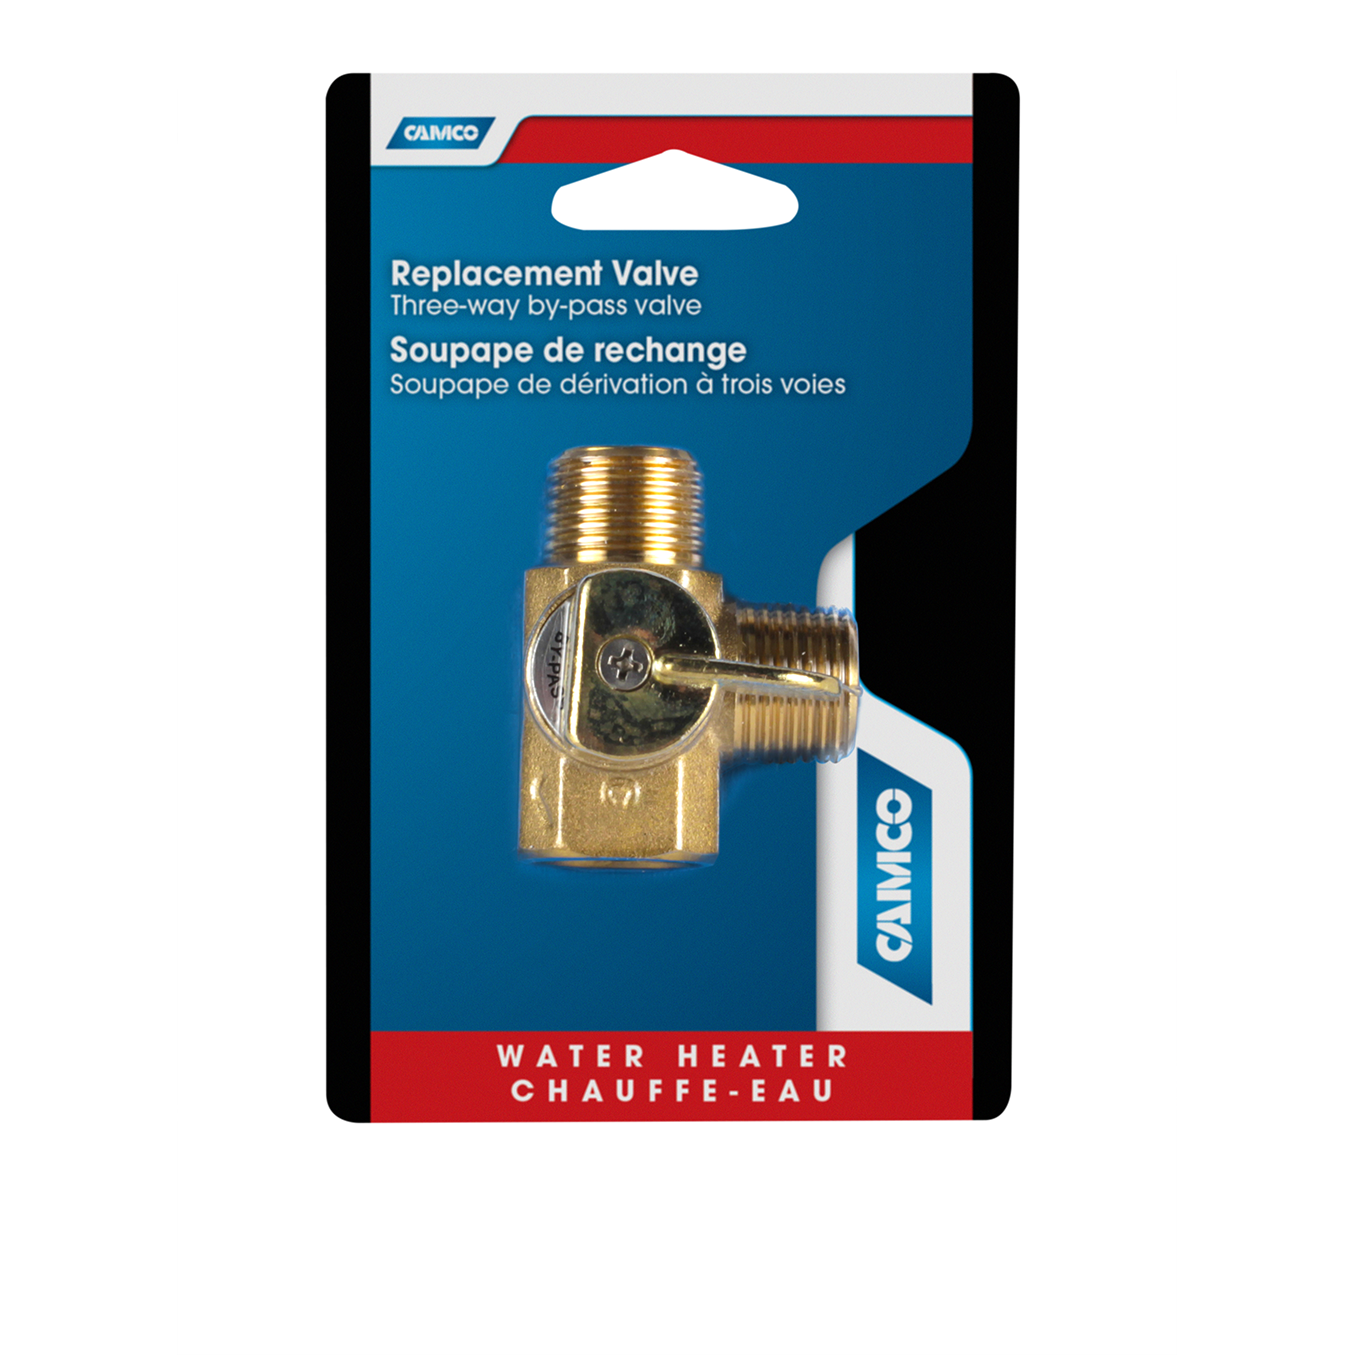 Camco 37463 3-Way By-Pass Vave Replacement